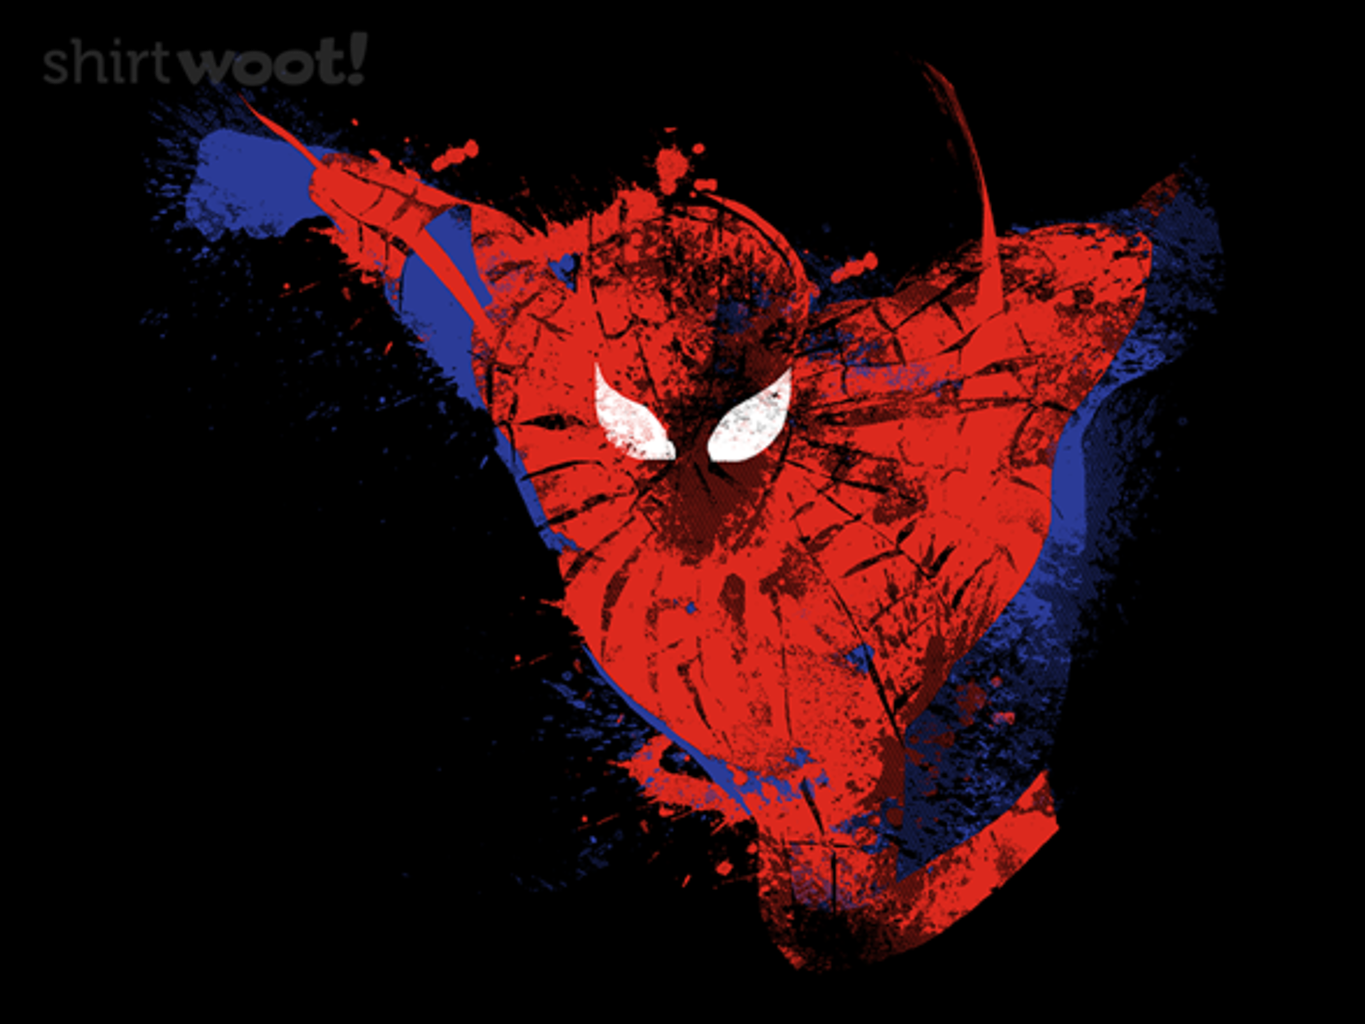 Woot!: The Web